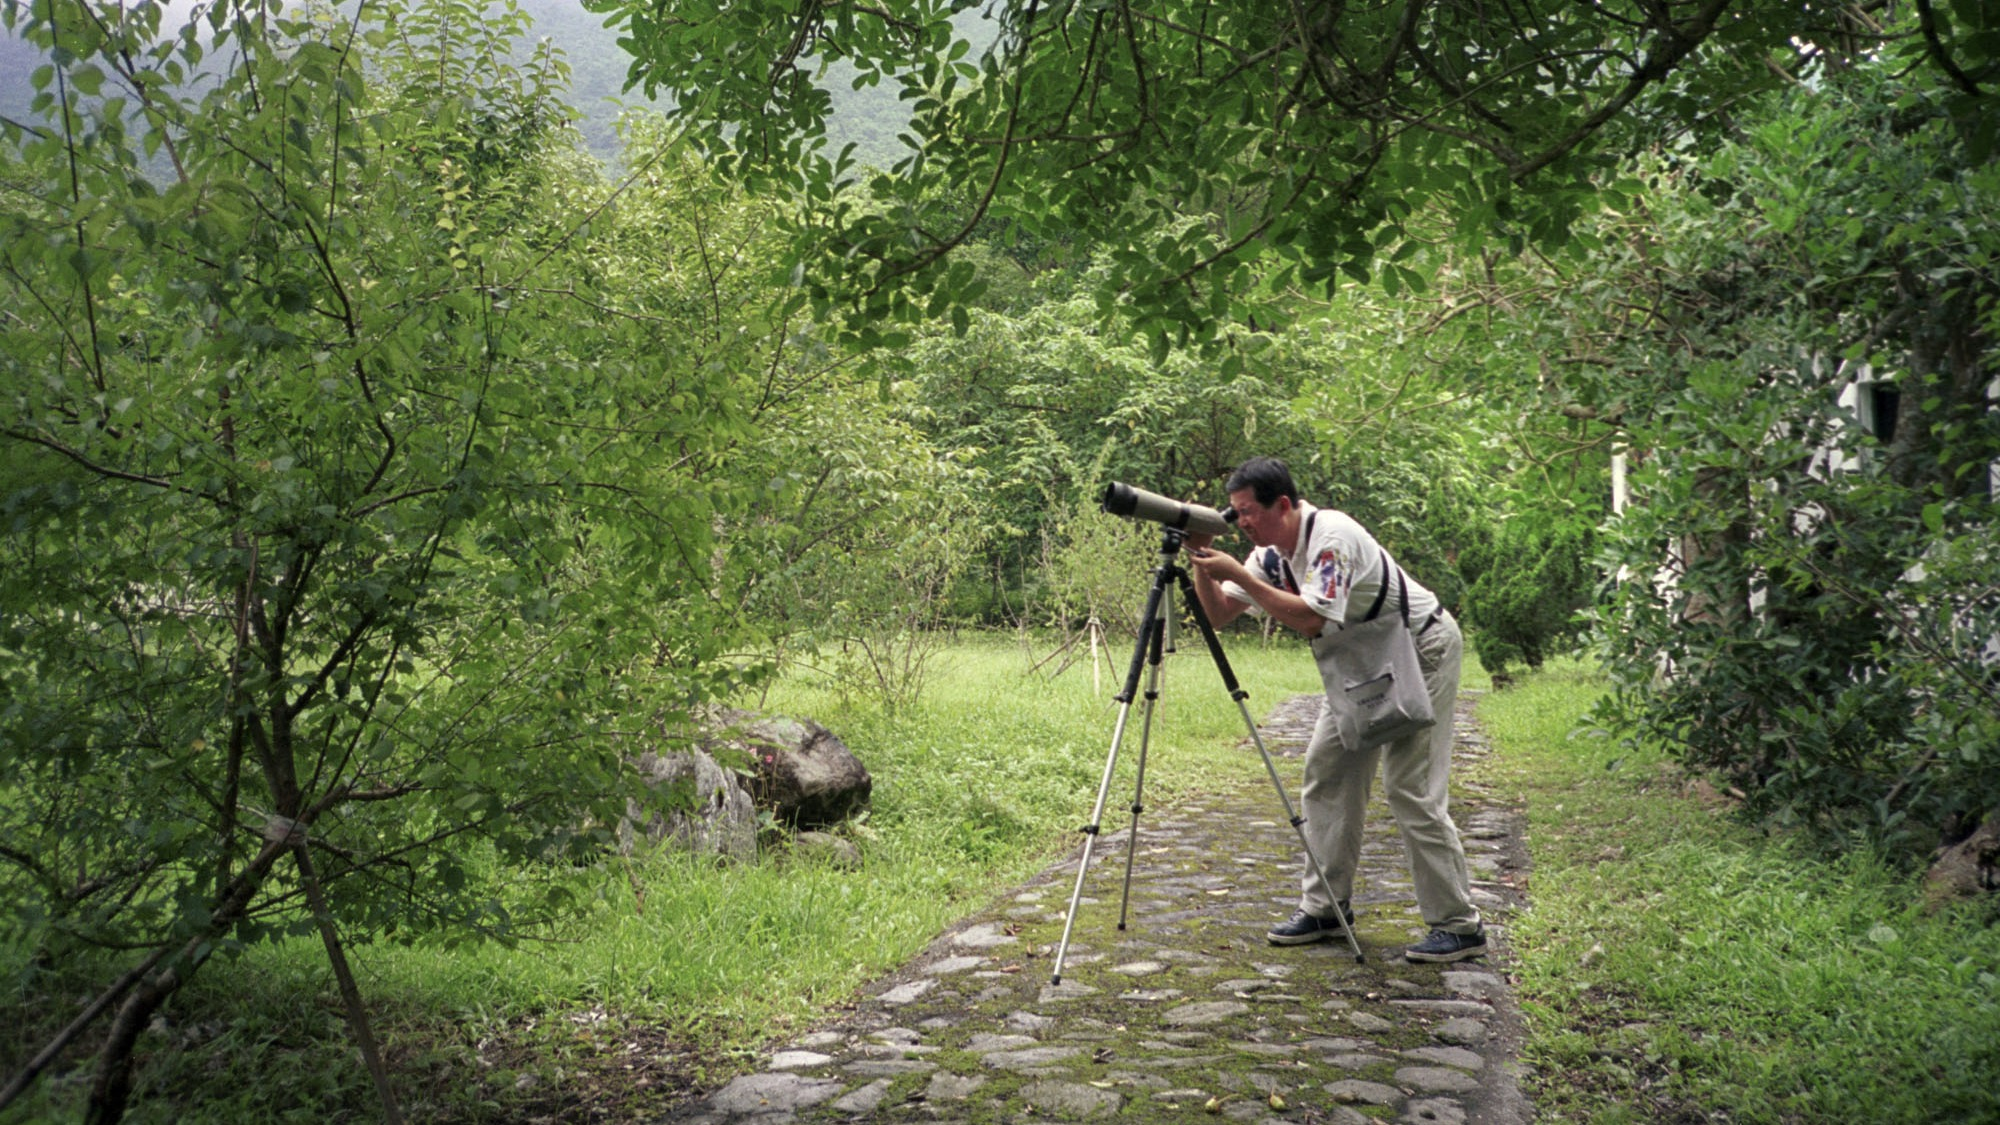 Tour guide Huang Chia-fa looks at bird through his binoculars at a rain forest in Fuyuan in Taiwan's eastern county of Hualien, June 1, 2003. Fuyuan Forest Resort, in the low mountain range of coastal Hualien County is a birdwatcher's paradise thanks to new conservation efforts and a greater awareness of the importance of nature. The forest is home to some 50 bird species, including a few rare birds like the maroon oriole. Mountainous subtropicalTaiwan has about 150 bird species, including 15 indigenous species. (AP Photo/Aniie Huang)